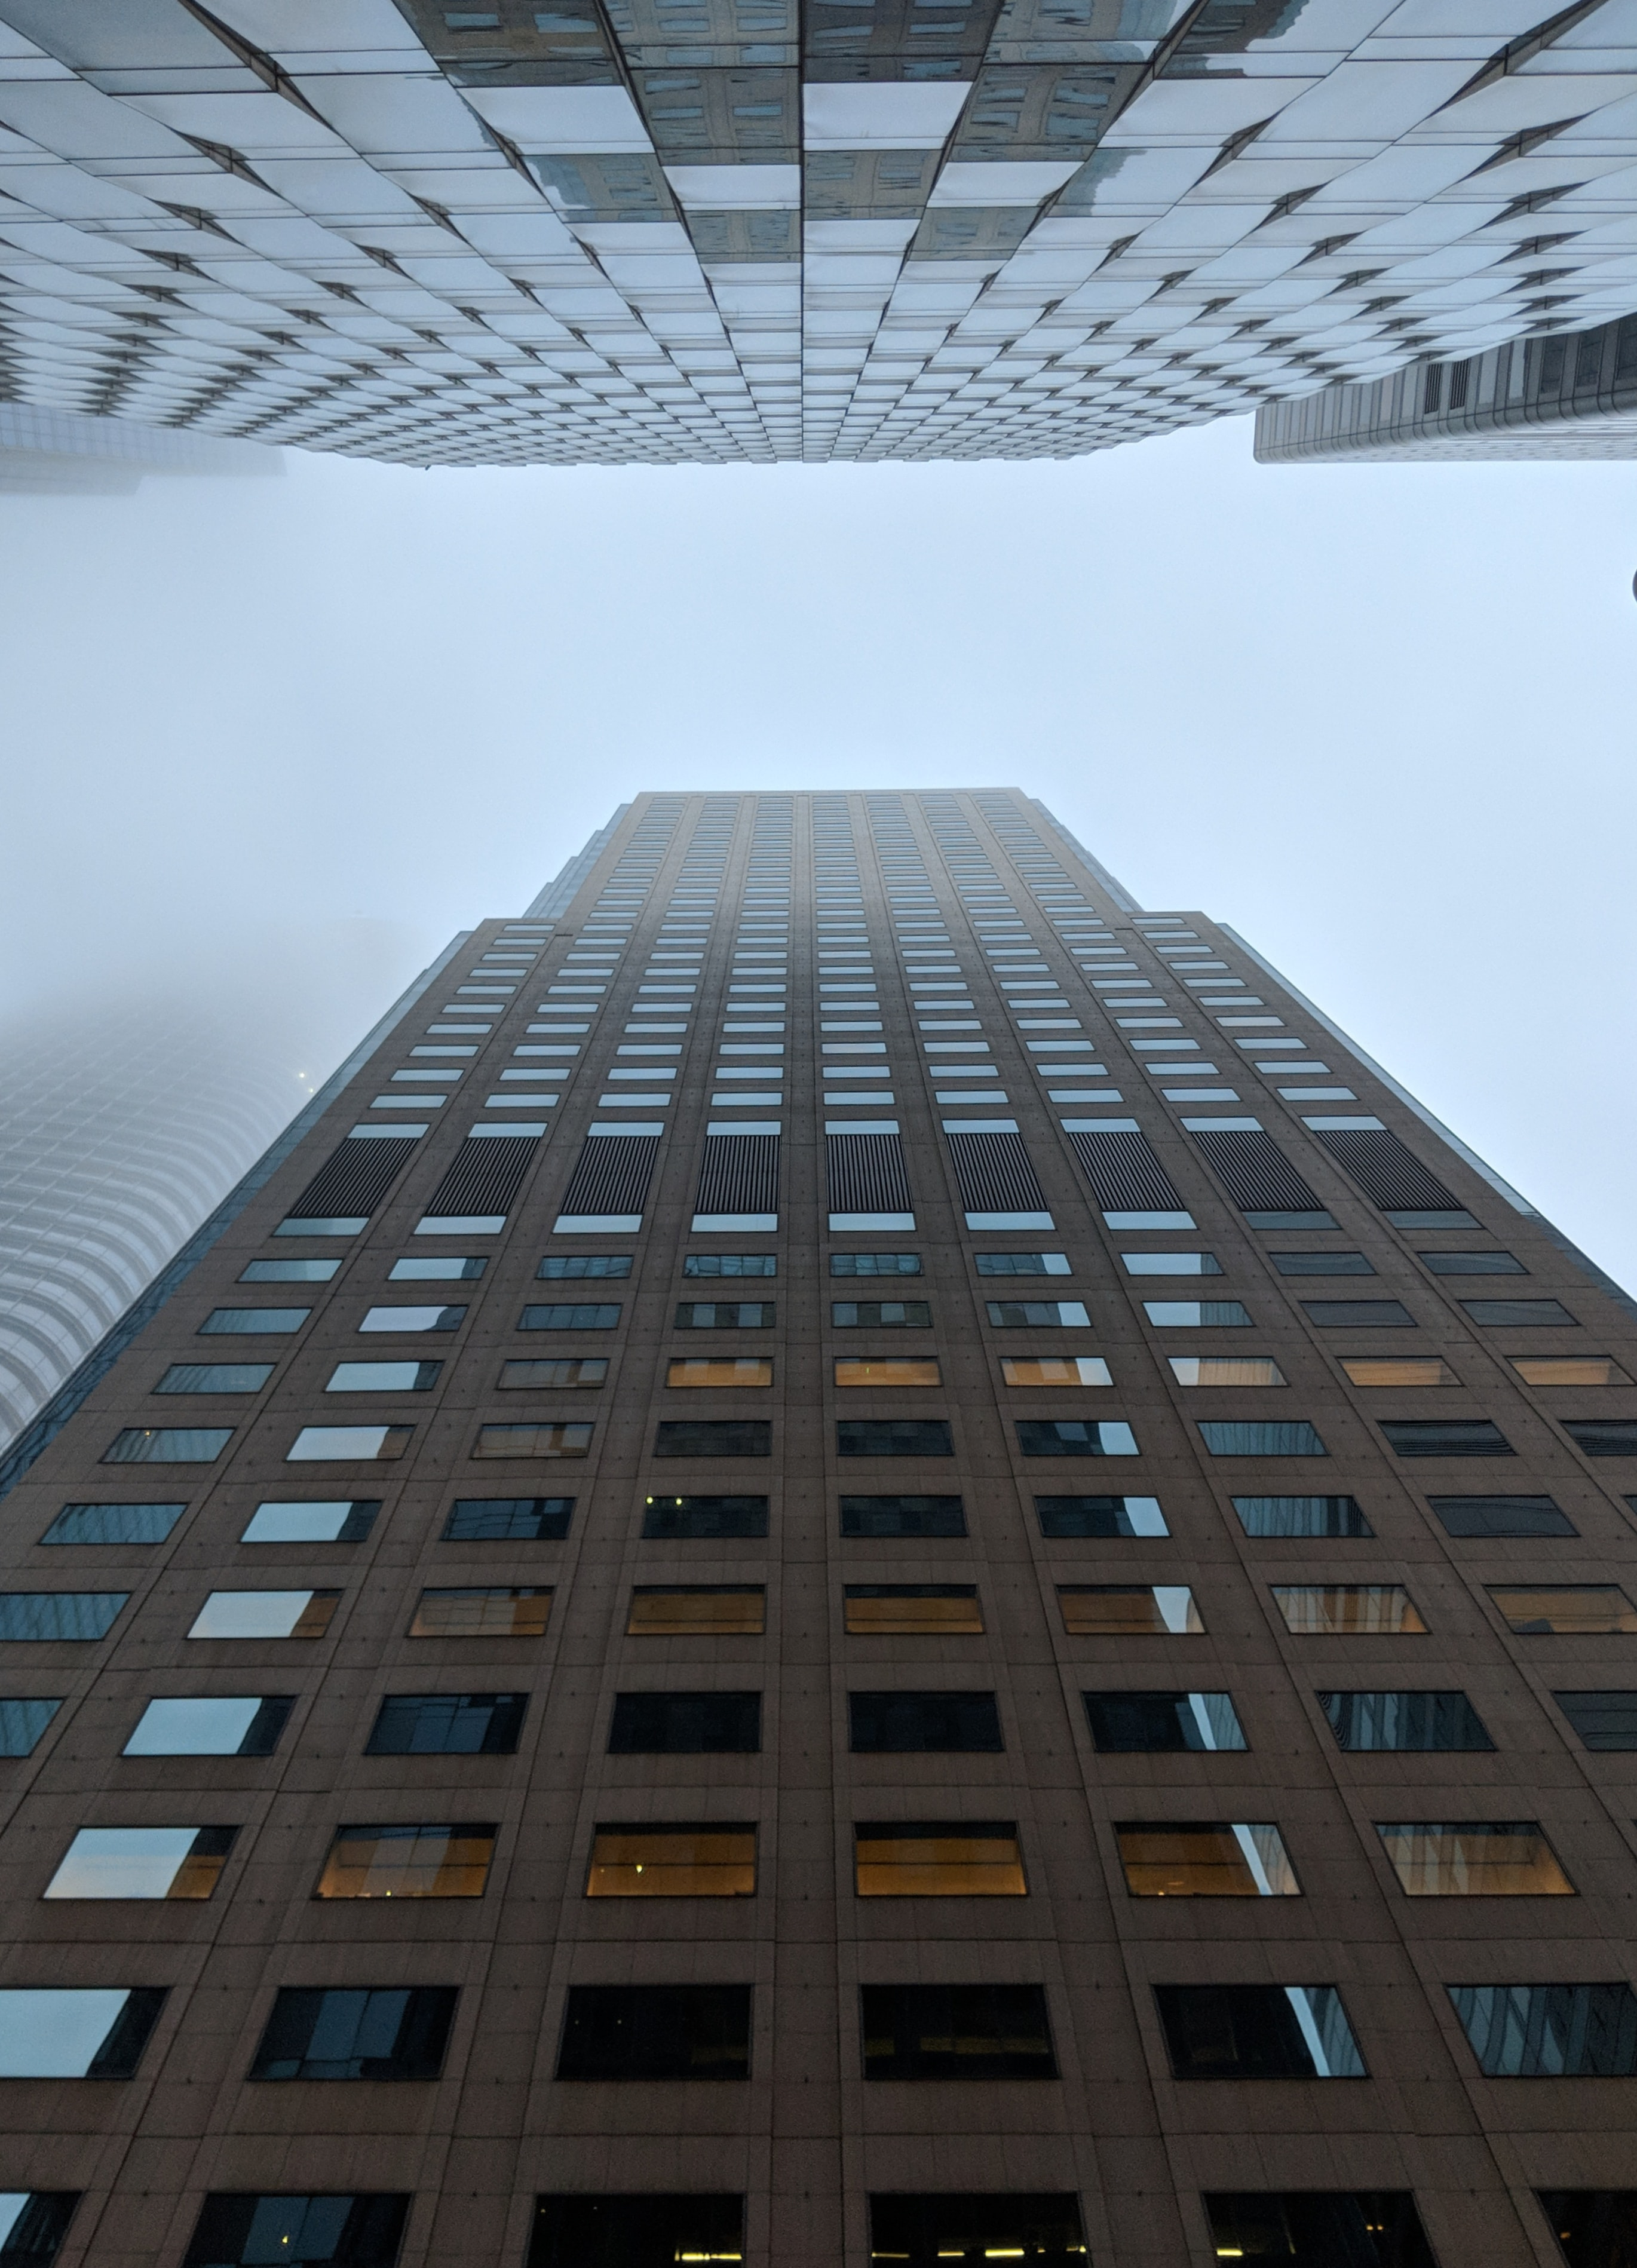 worm's view of building